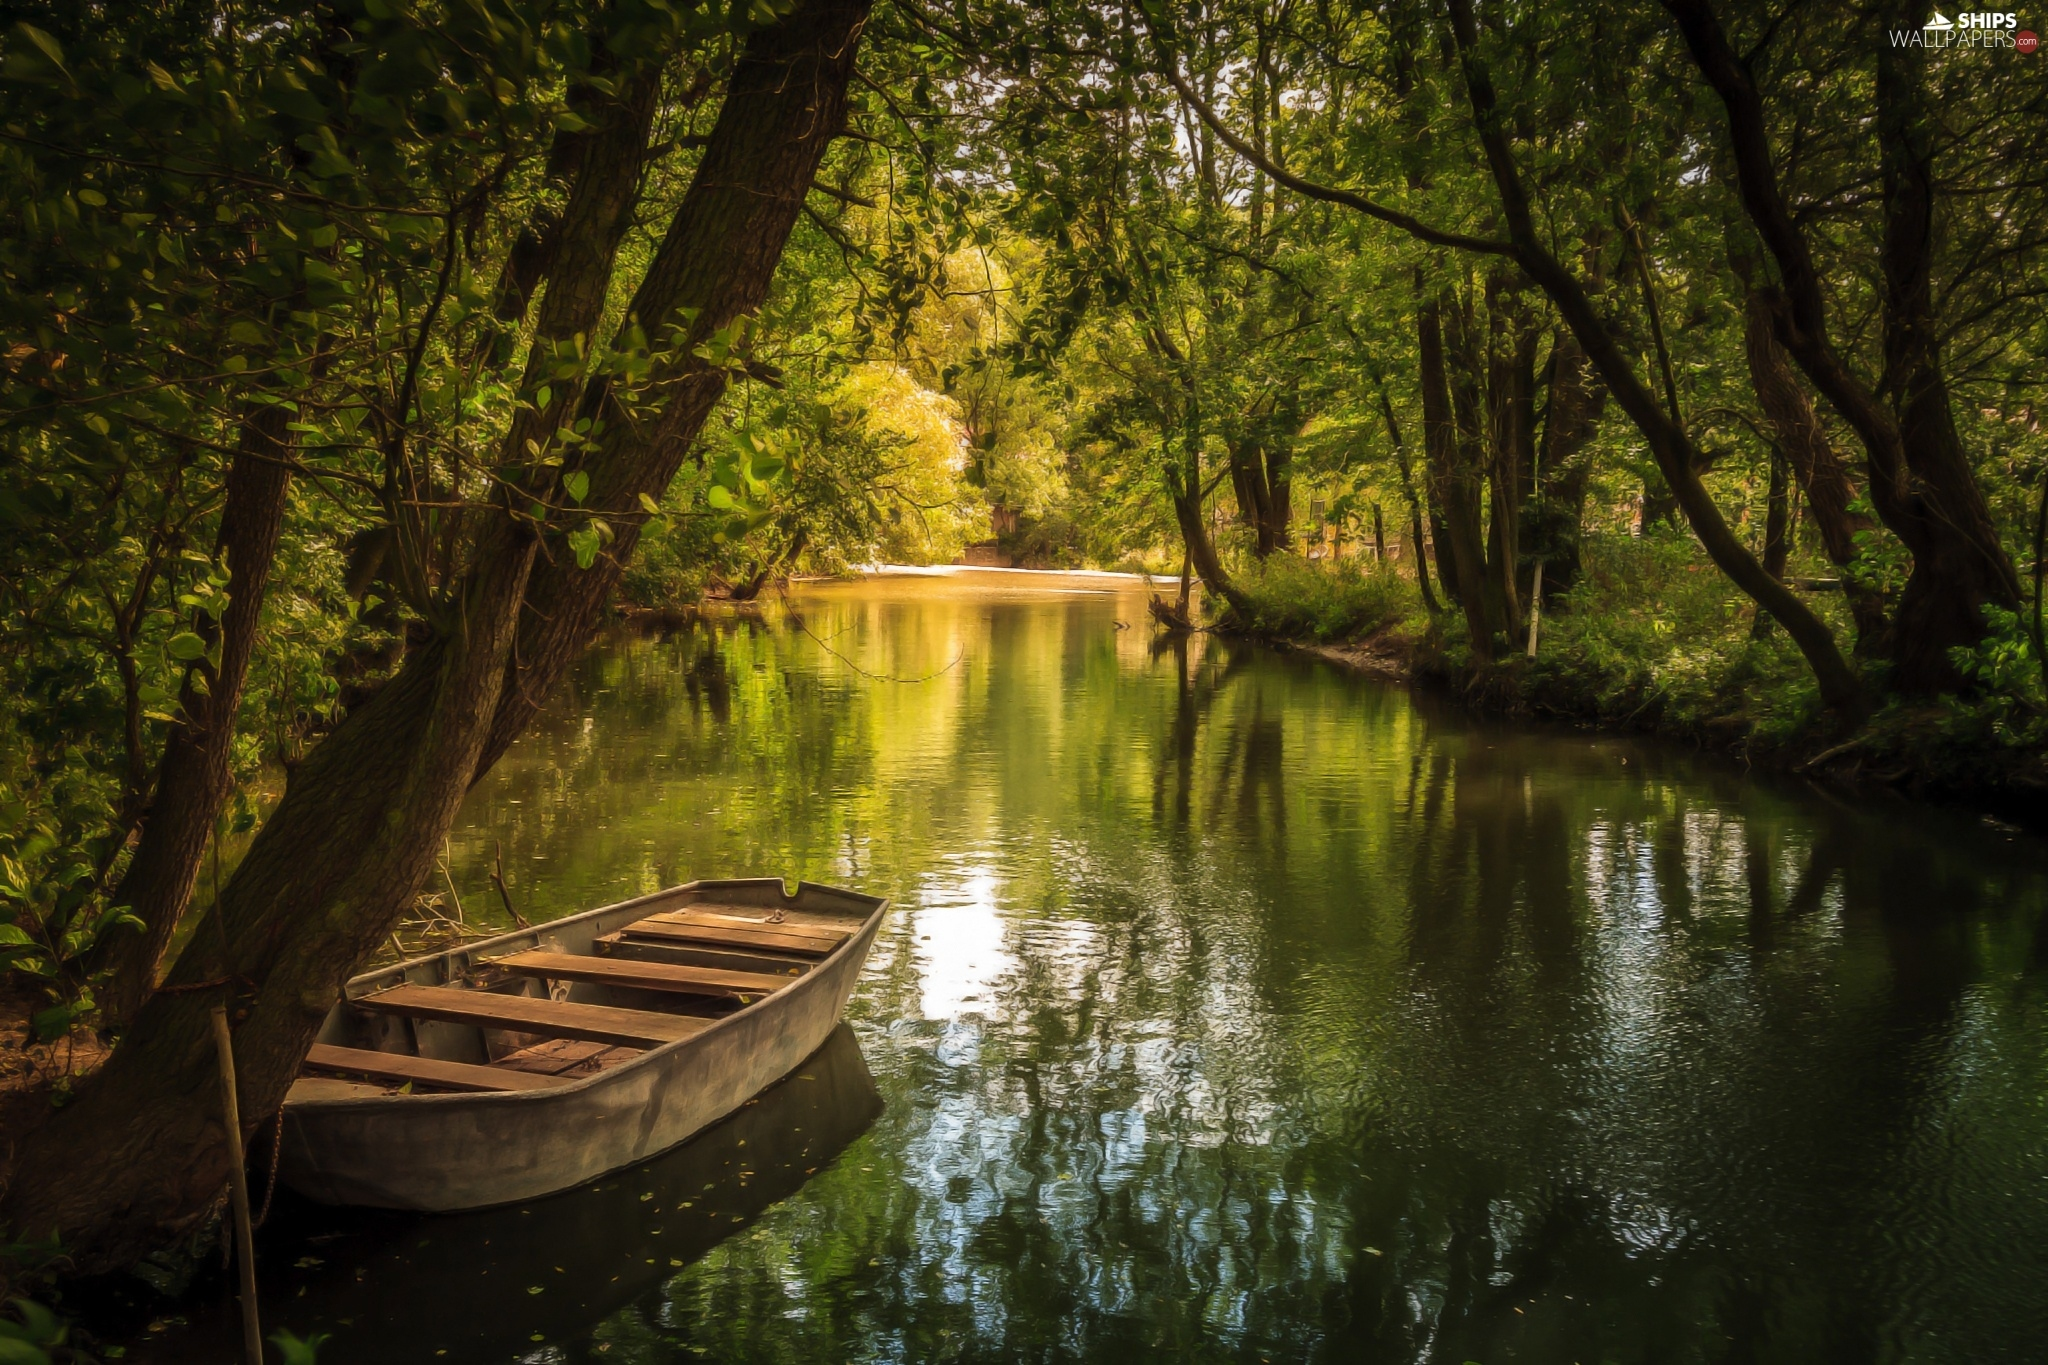 River viewes Boat trees   Ships wallpapers 2048x1365 2048x1365